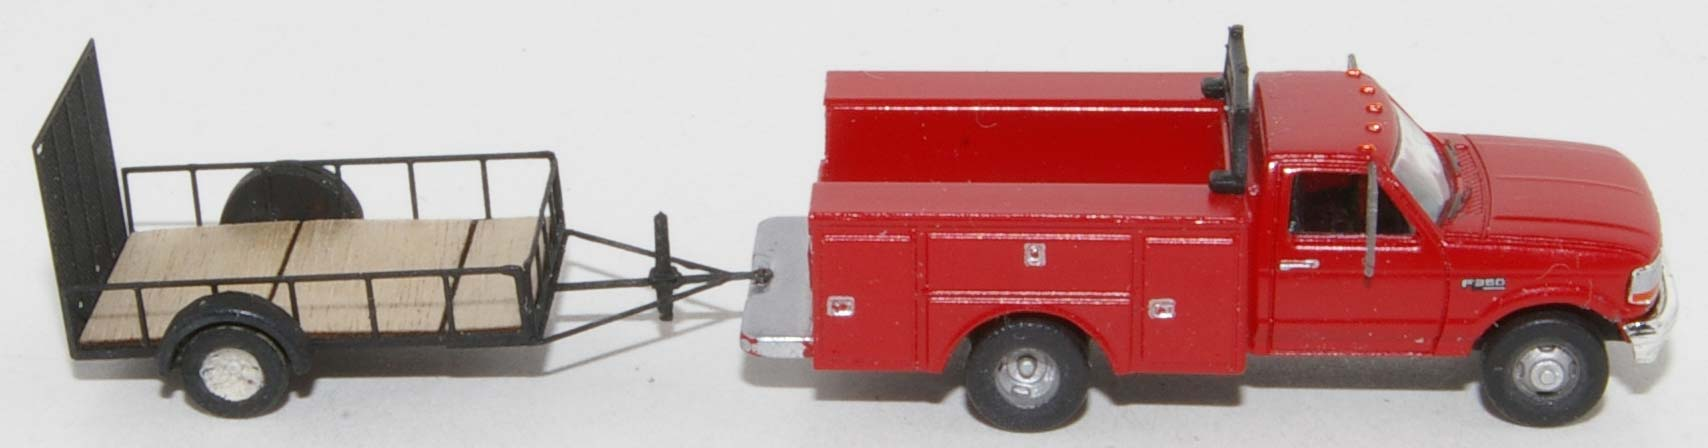 RPS F-350 with Showcase Minatures Trailer-2